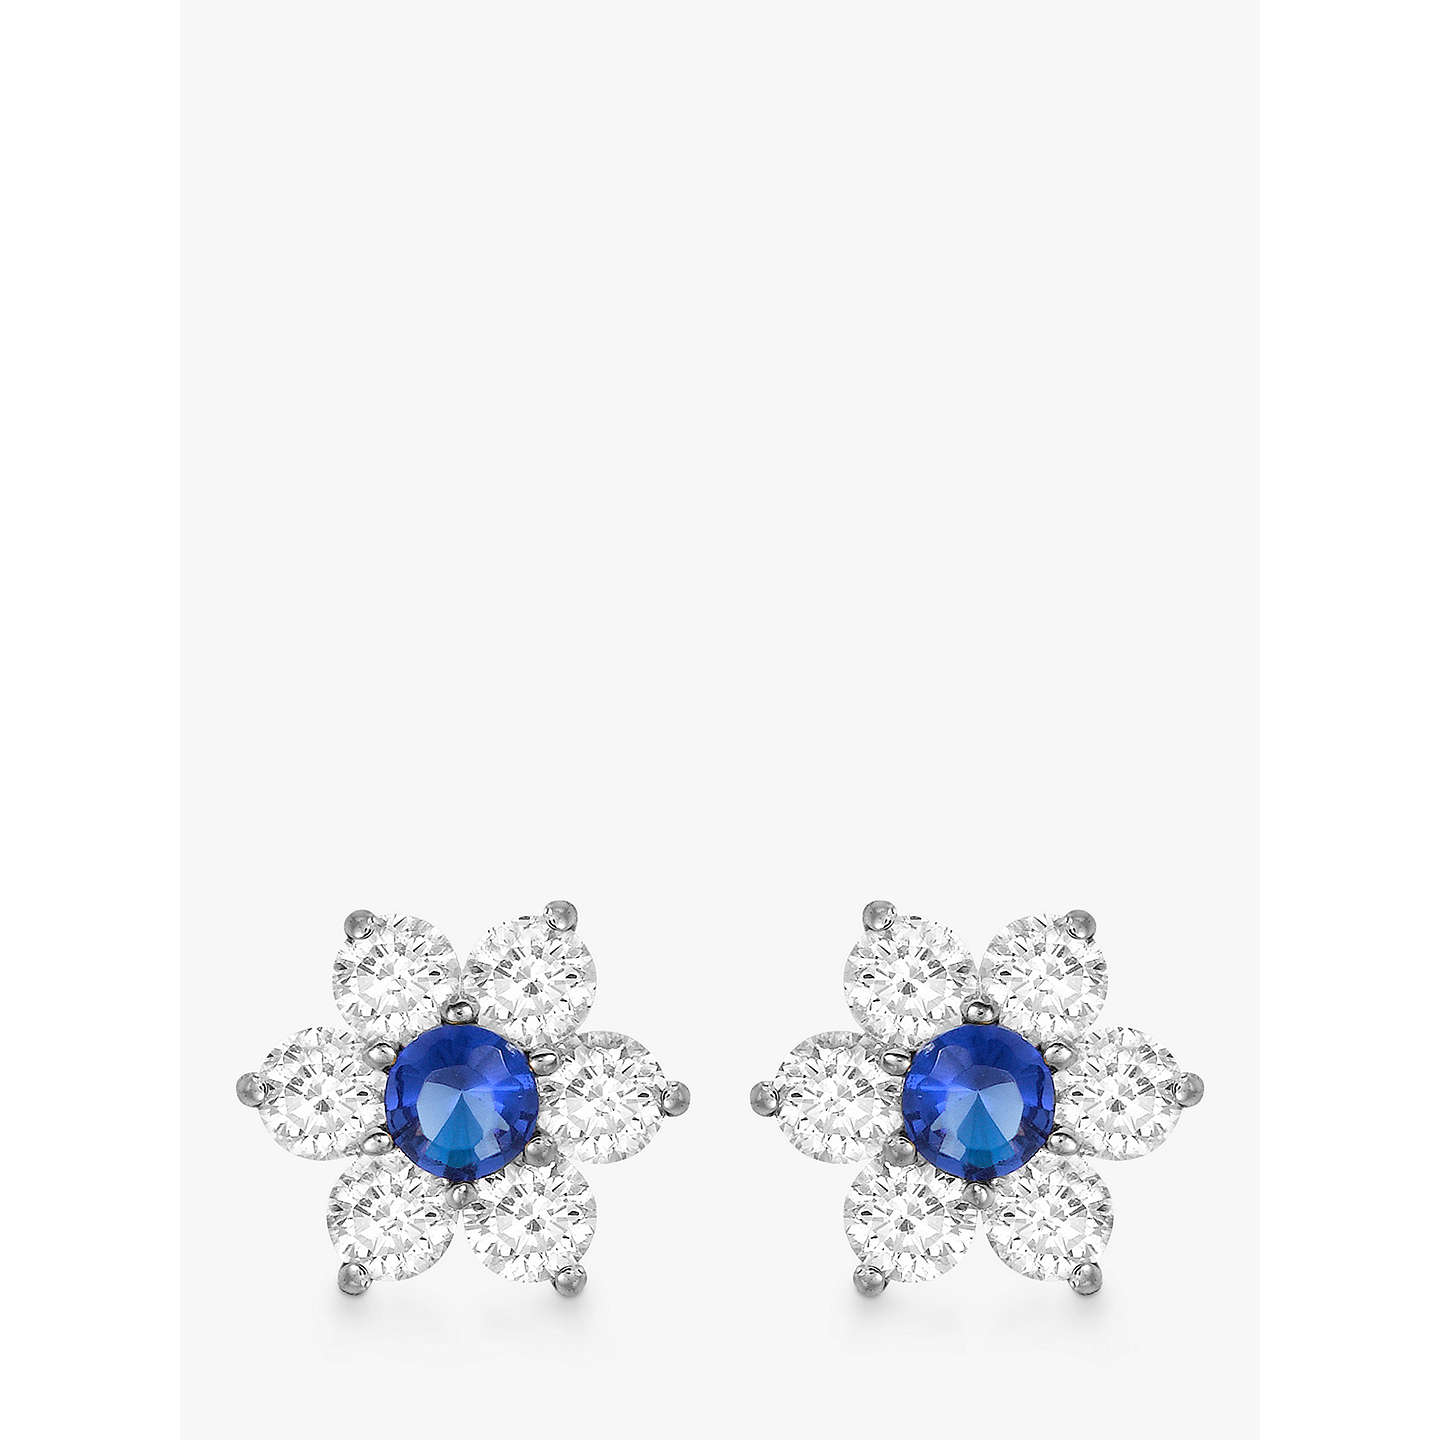 studs collections zirconia set light earrings stud cubic prong lavender cz purple jewelryland products gold com round white birthstone